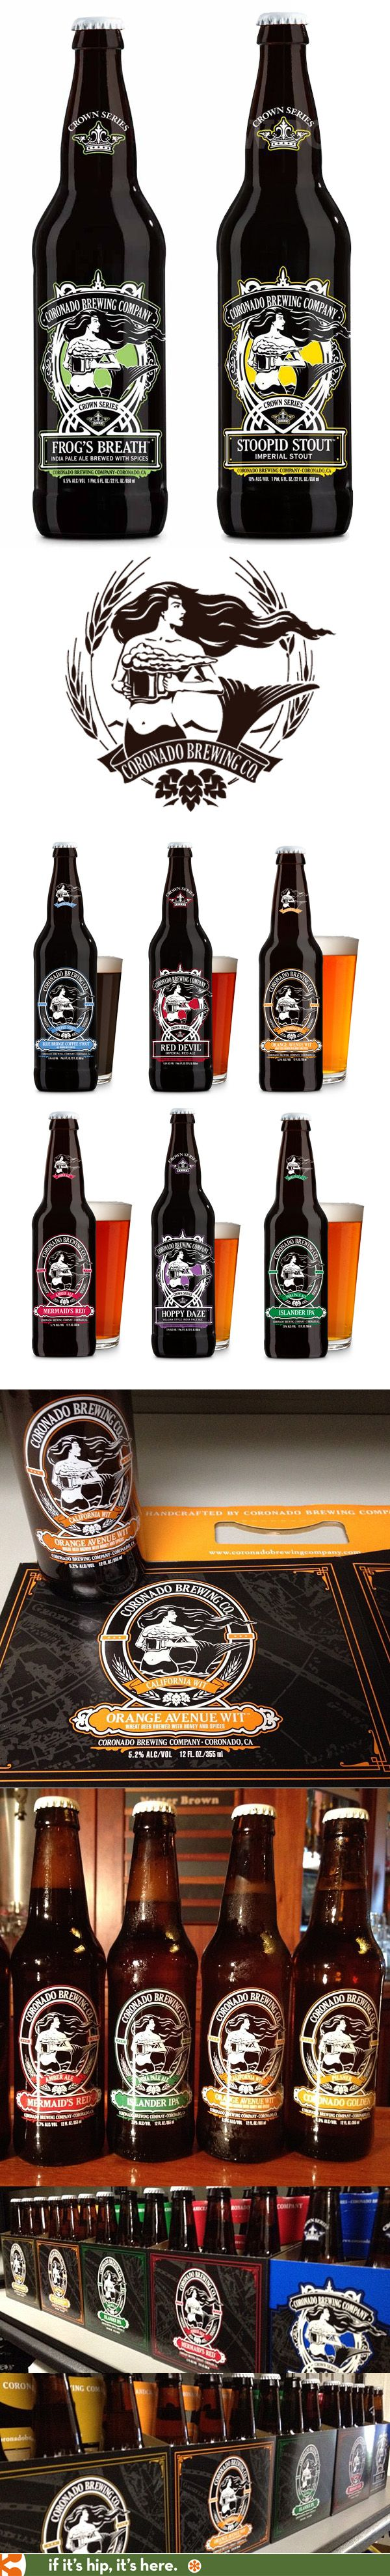 Coronado Brewing Companies' silk screened bottles for their Crown Series collection. Mermaid logo and fun names.